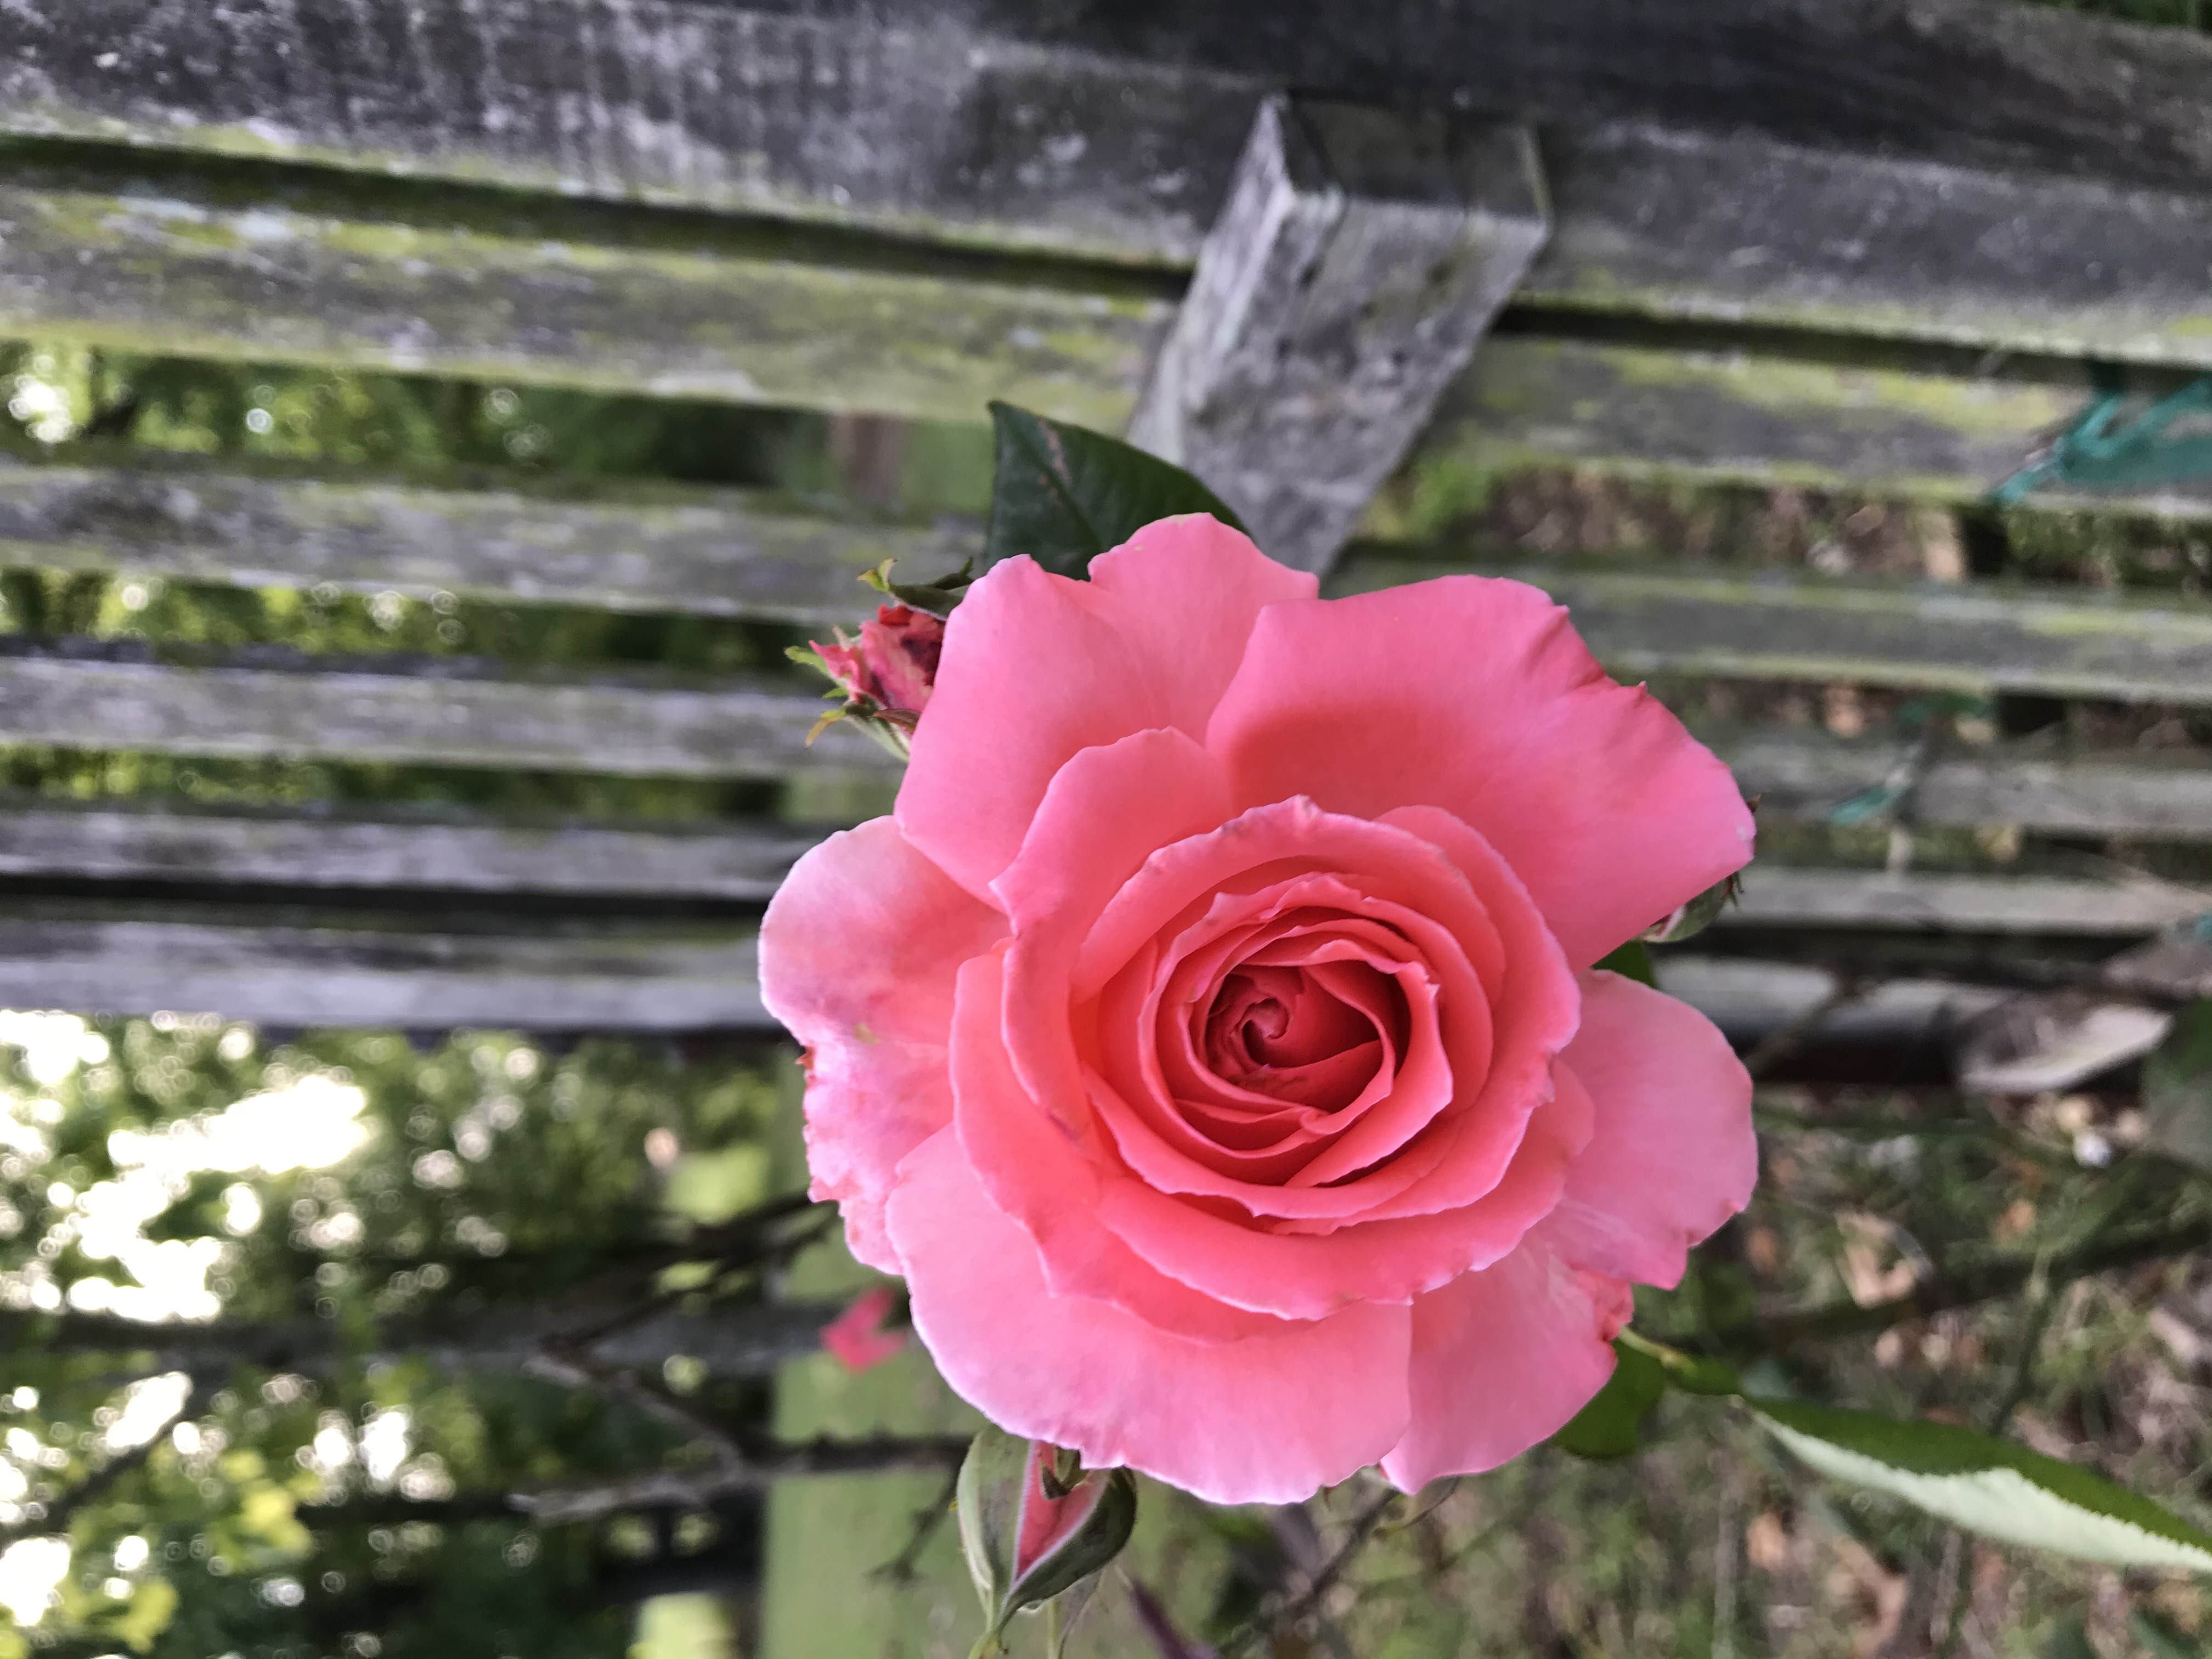 PRUNE YOUR ROSES TO BOOST YOUR HOMES CURB APPEAL